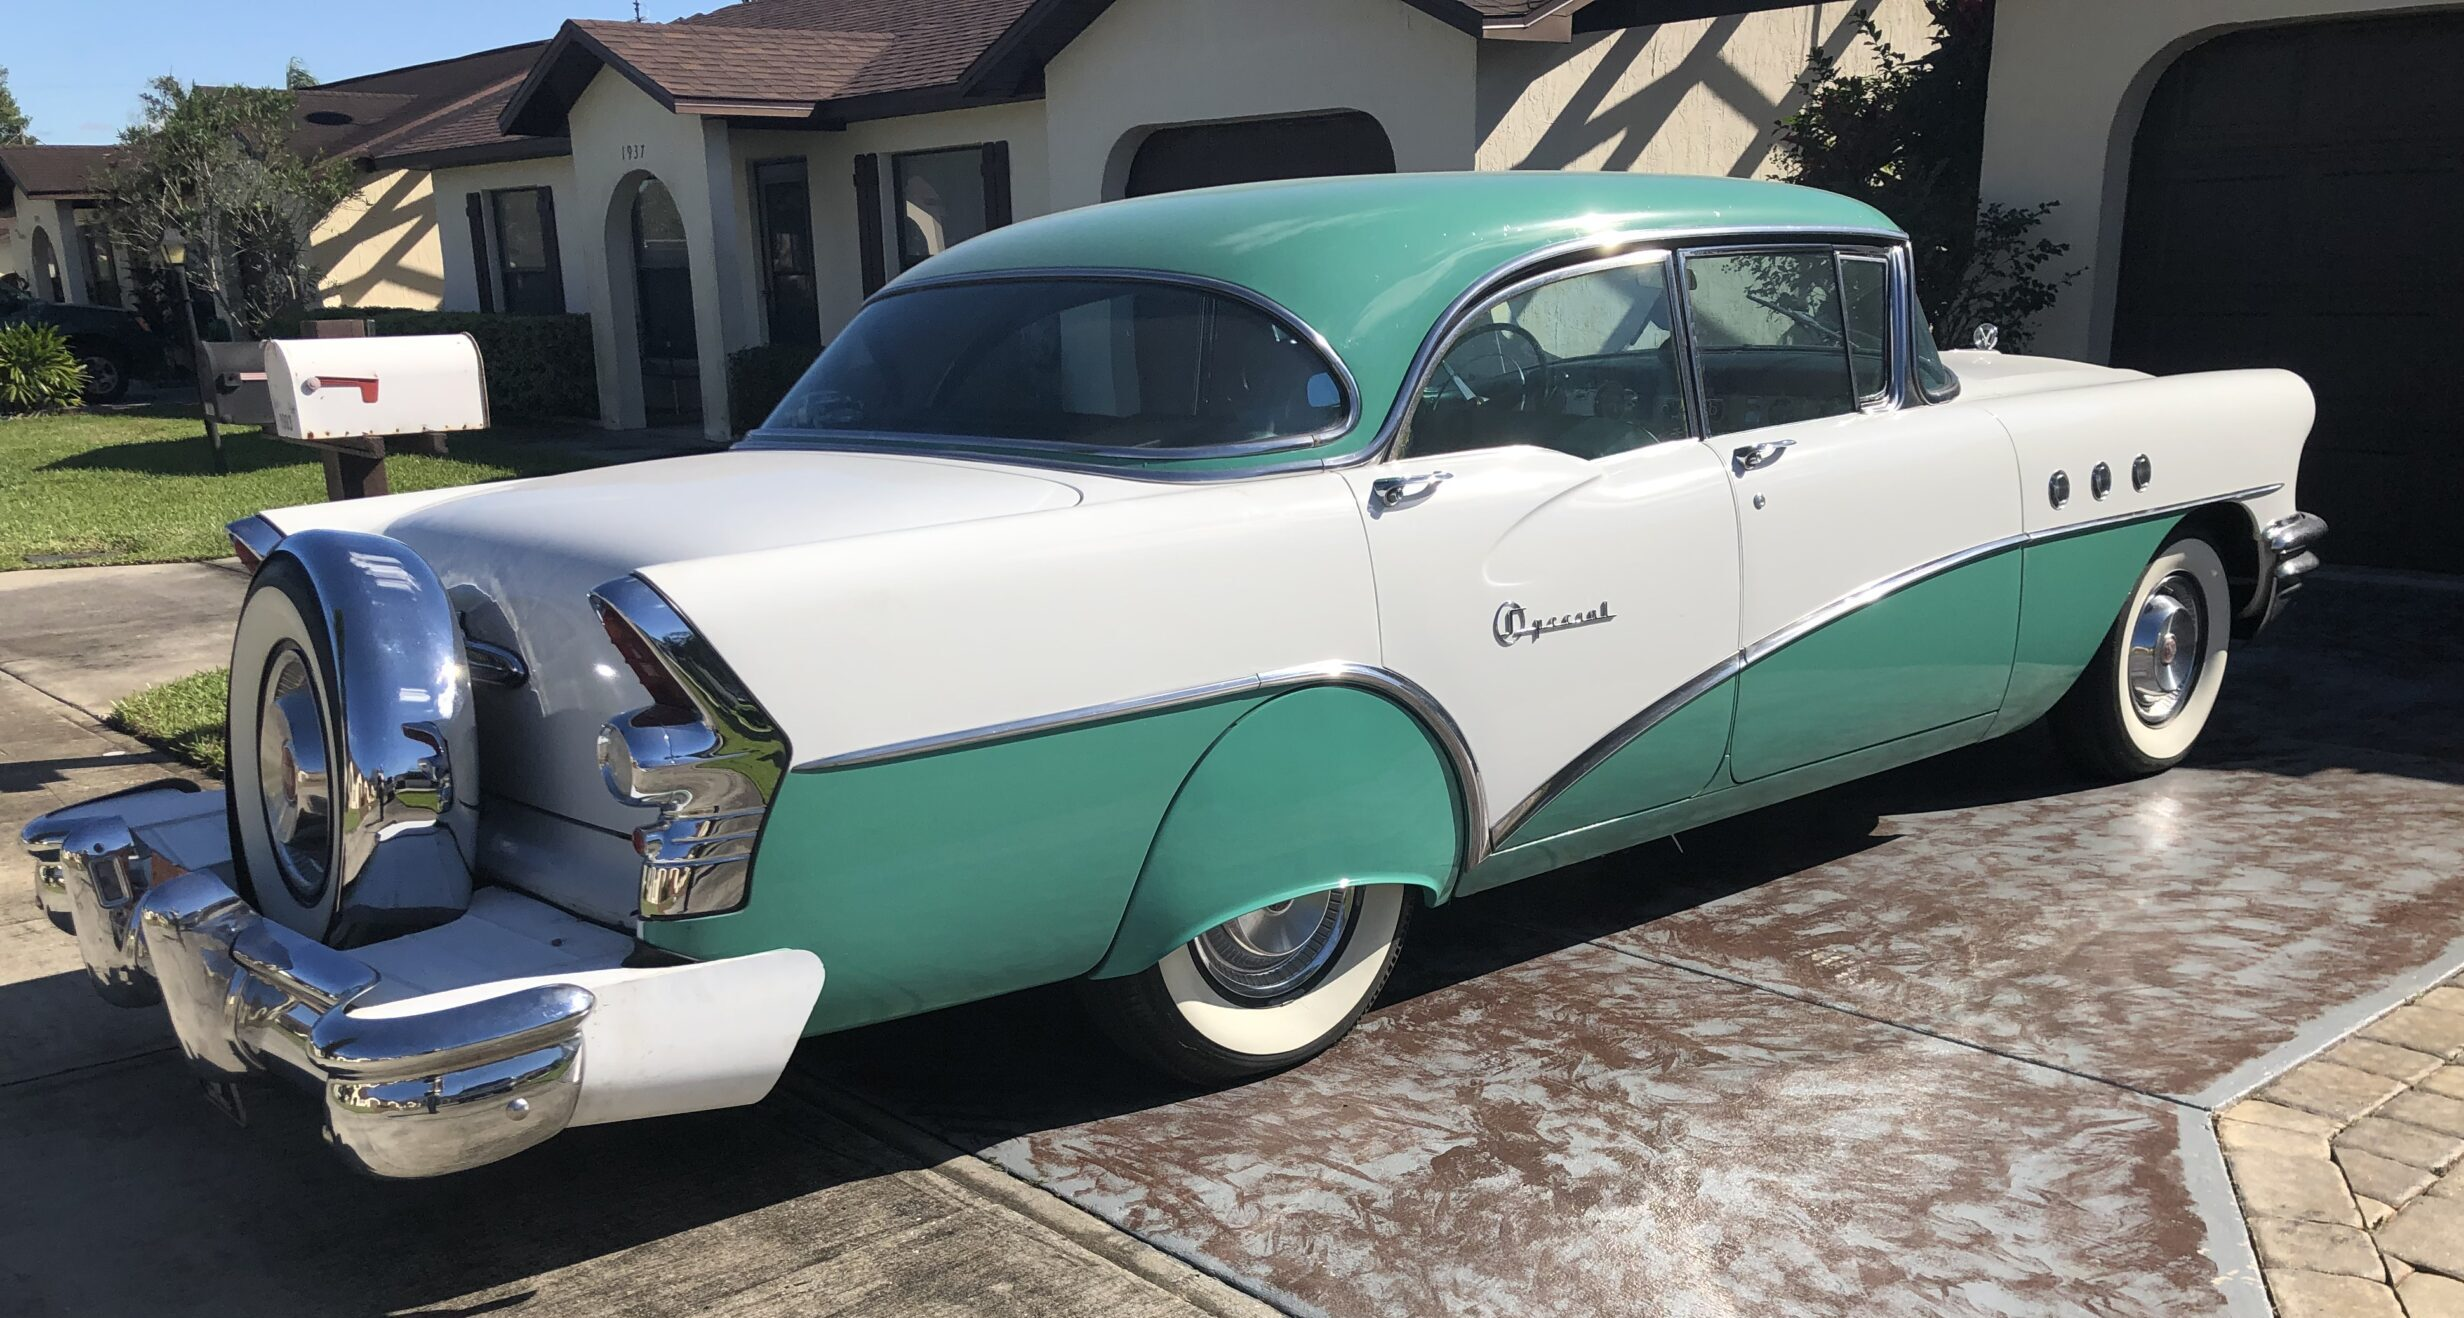 Terry 1955 Buick